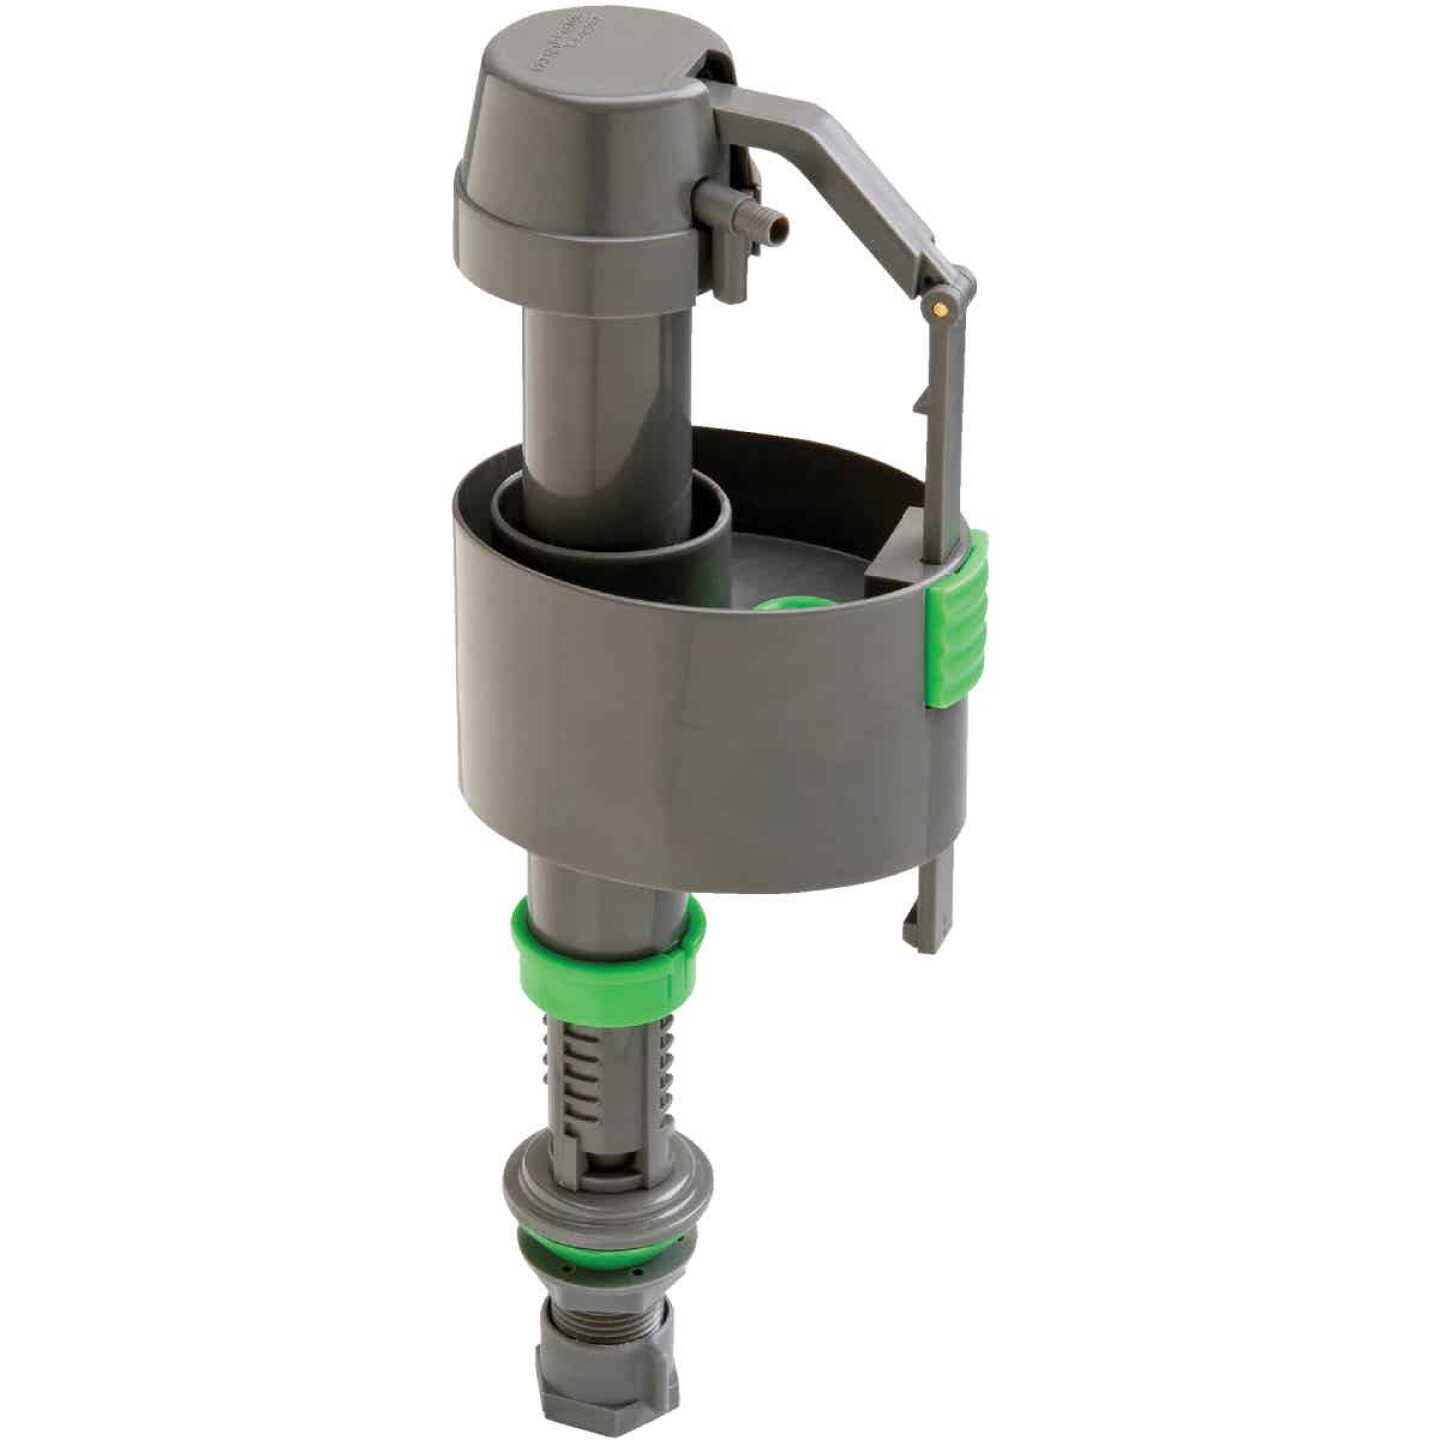 Do it Plastic 9-1/2 In. to 13-1/2 In. Adjustable Anti-Siphon Fill Valve  Image 1